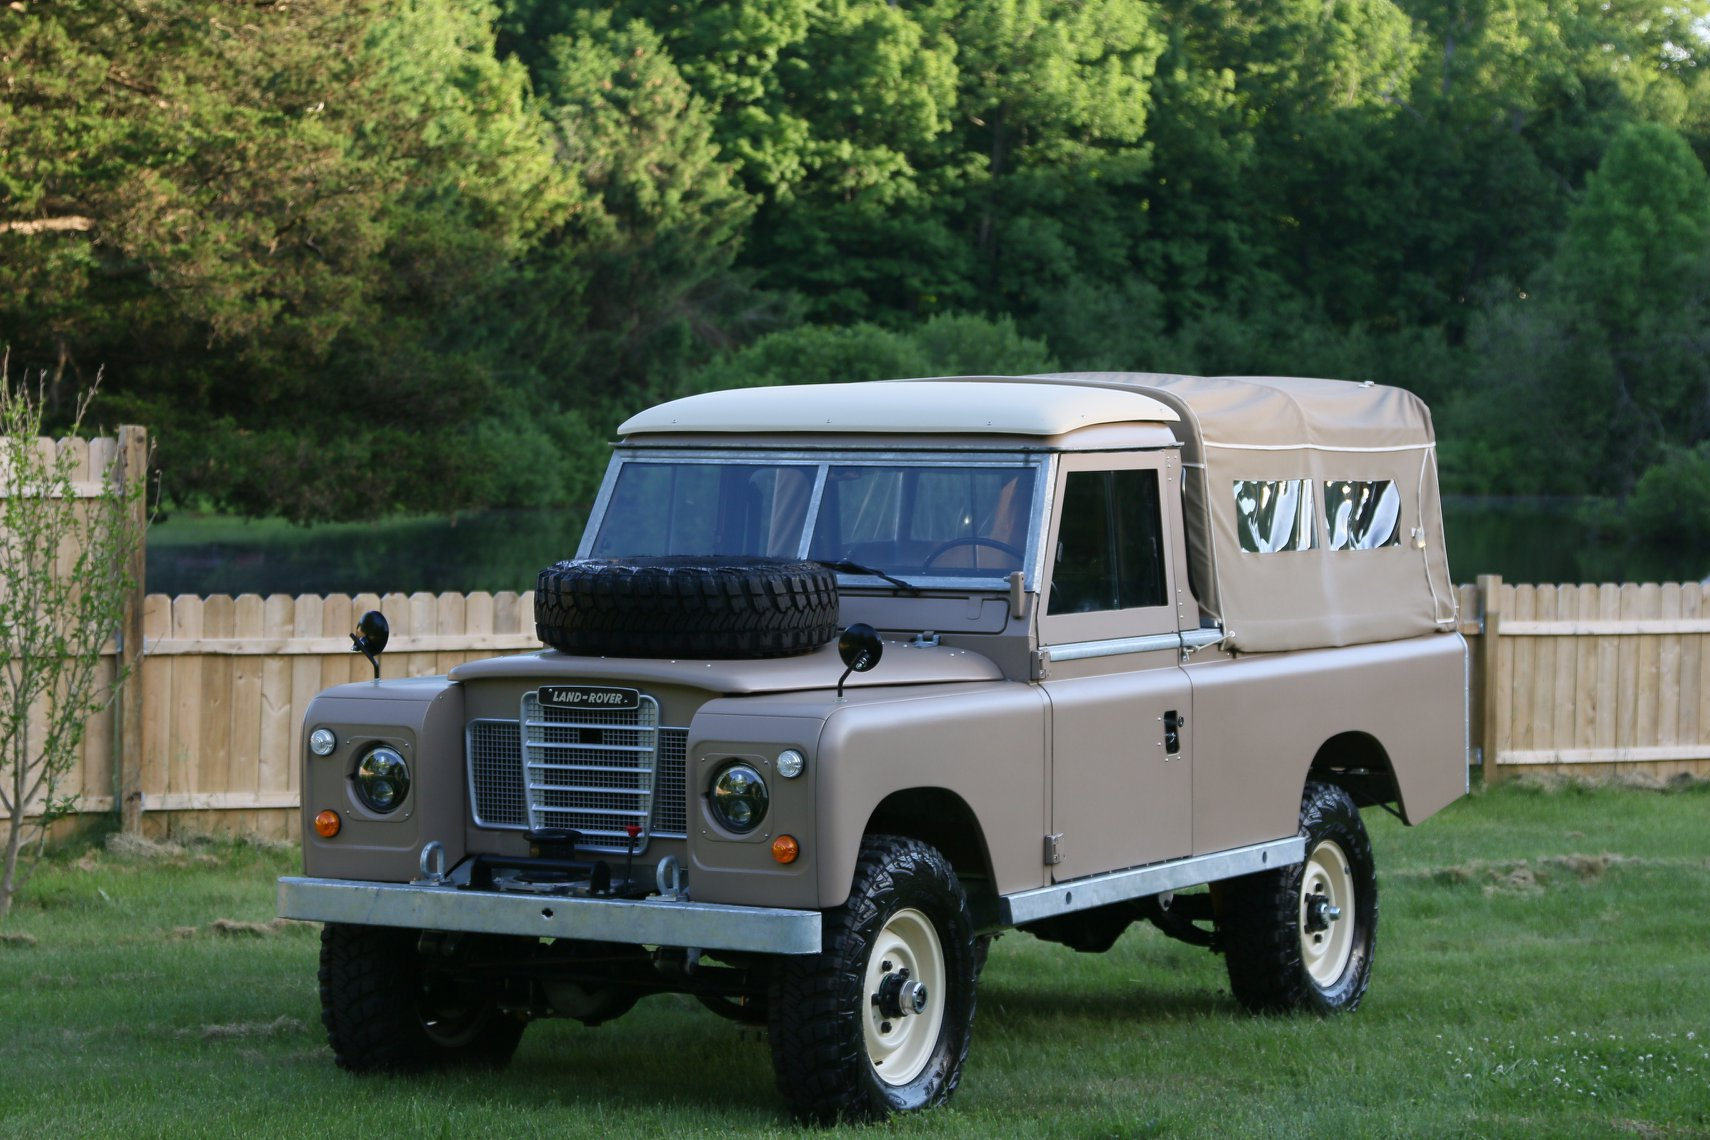 1972 Land Rover Series II 109 Inch Pickup Restoration Photo as